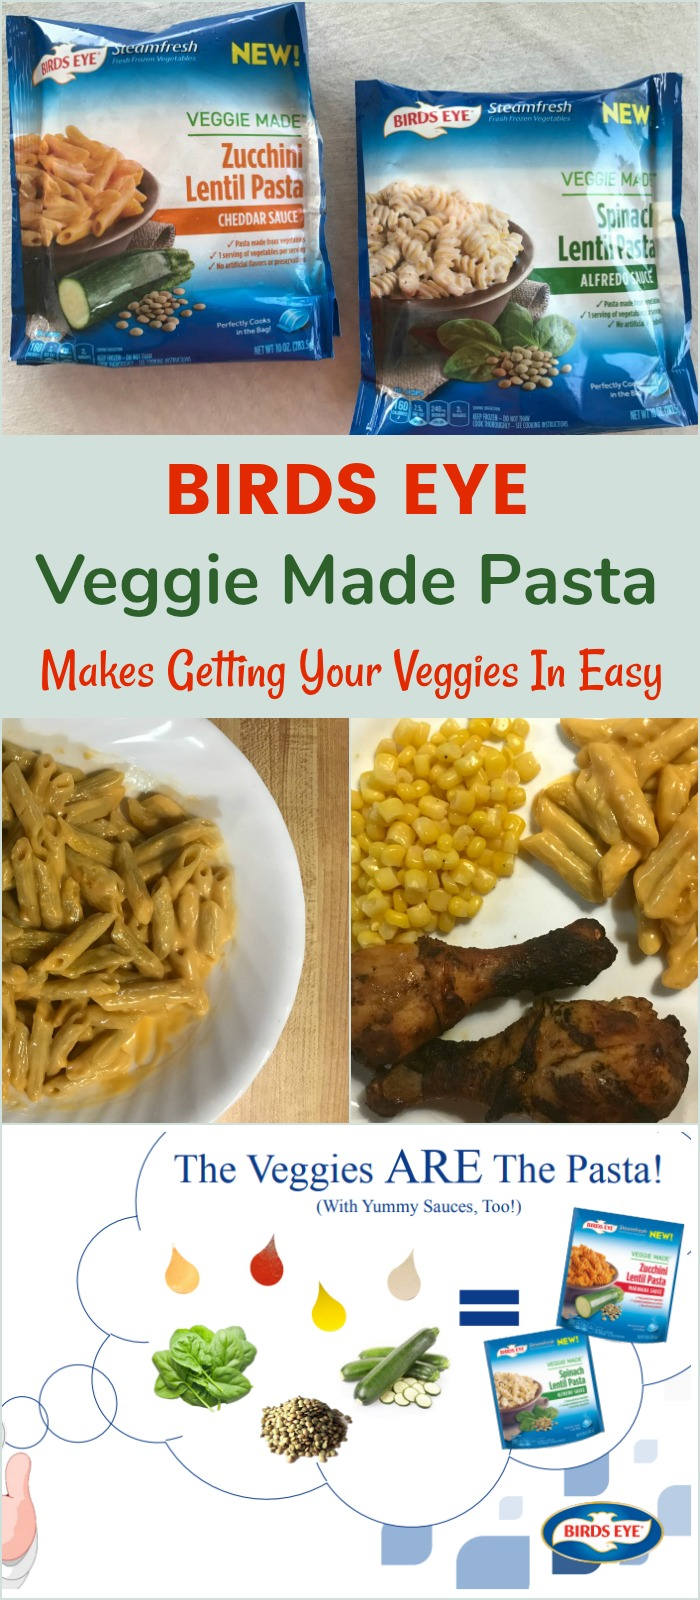 Birds Eye Veggie Made Pasta Makes Getting Your Veggies In Easy #SoVeggieGood #BirdsEyeVegetables